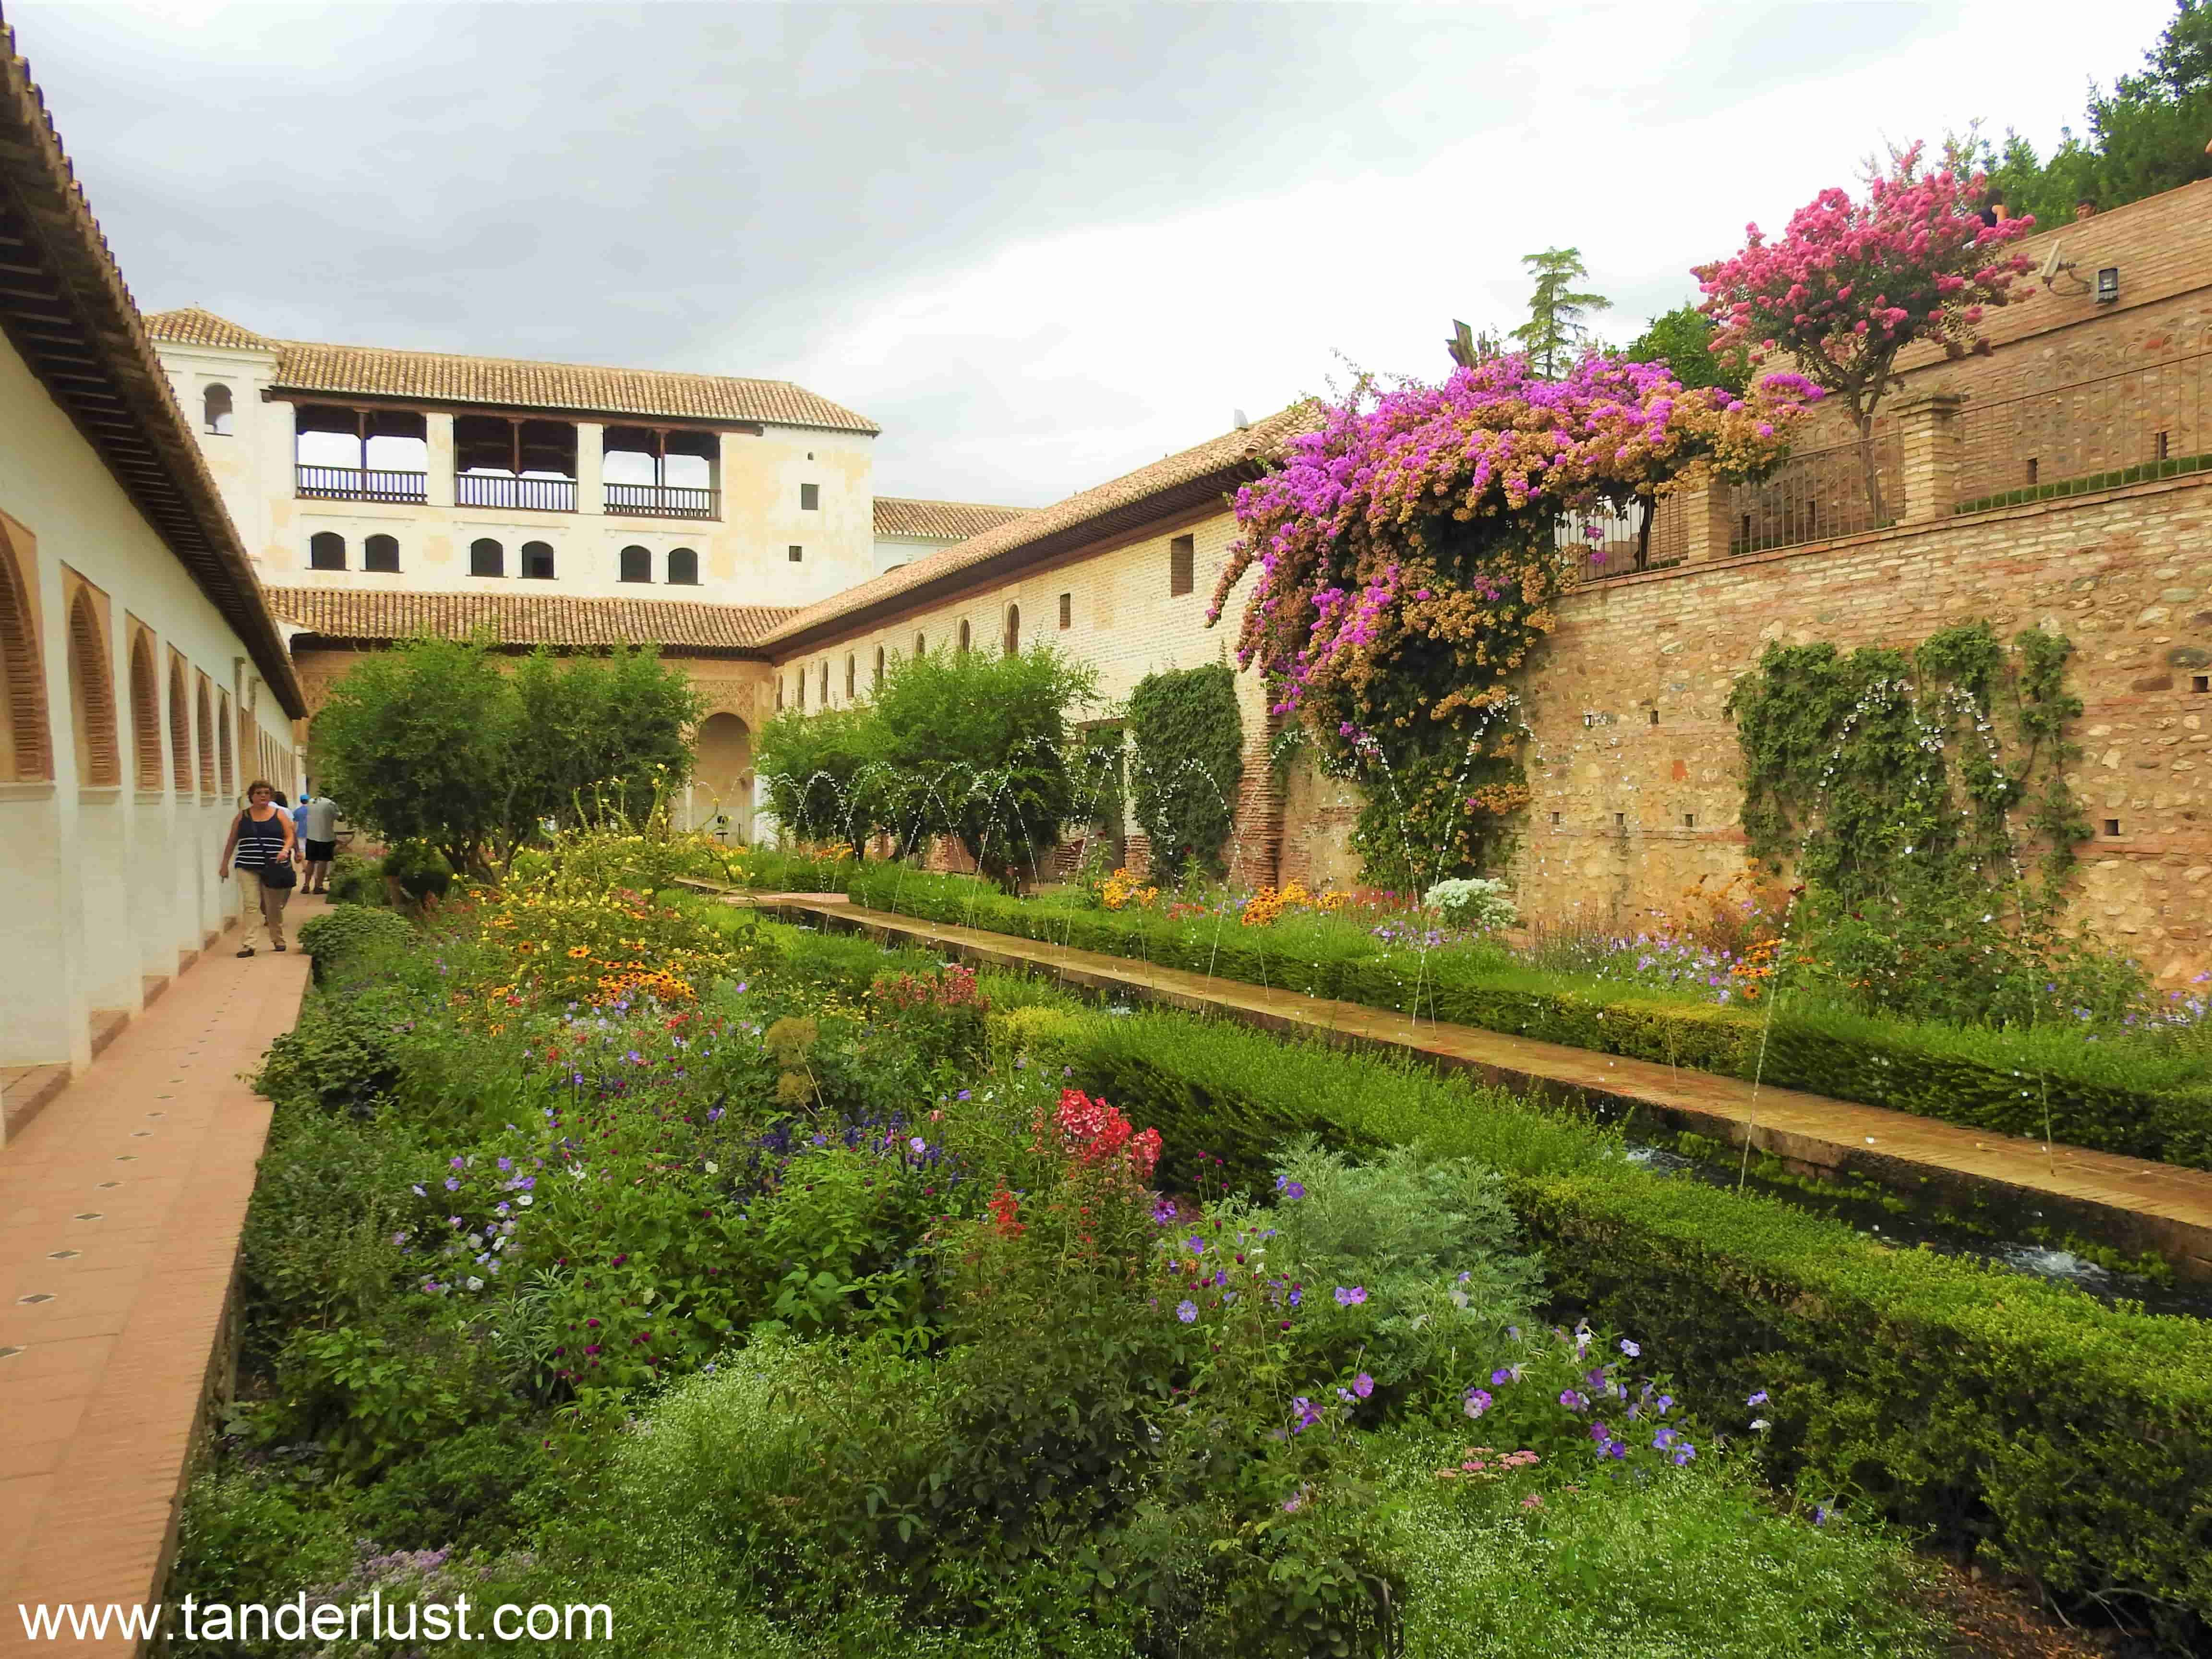 Alhambra in Granada: The most visited spot in Spain!